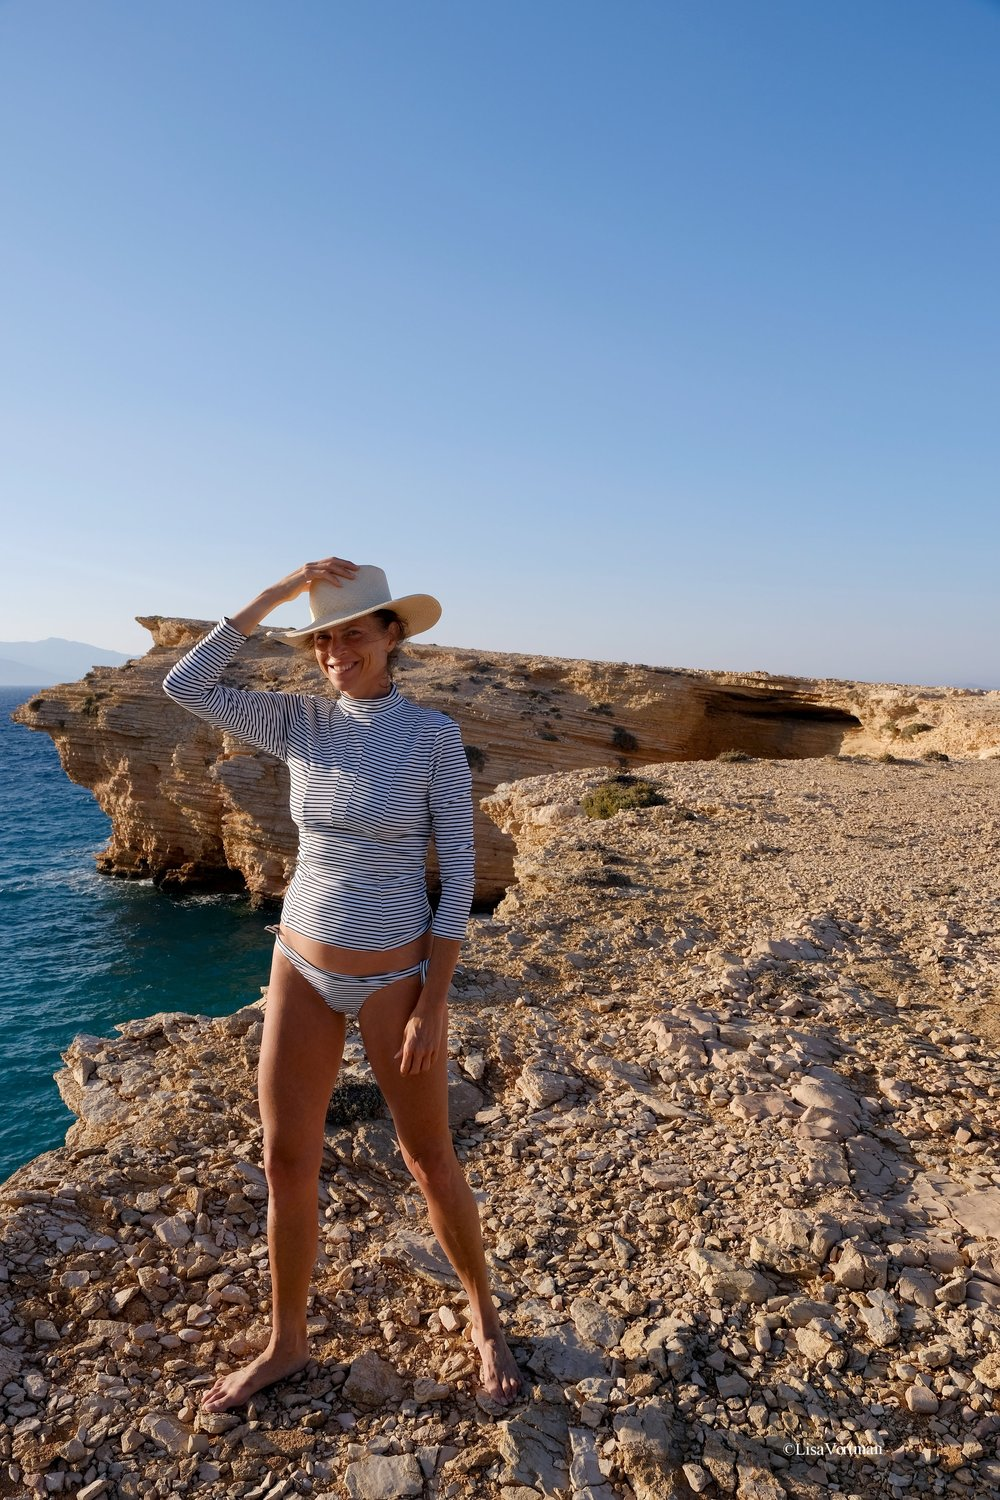 - Around and About 2018 press releaseAround and About 2018 participantsNaxos and the small cycladesArtist profile (in the works, stay tuned!)Patricia's travel trips for Greece (coming soon!)